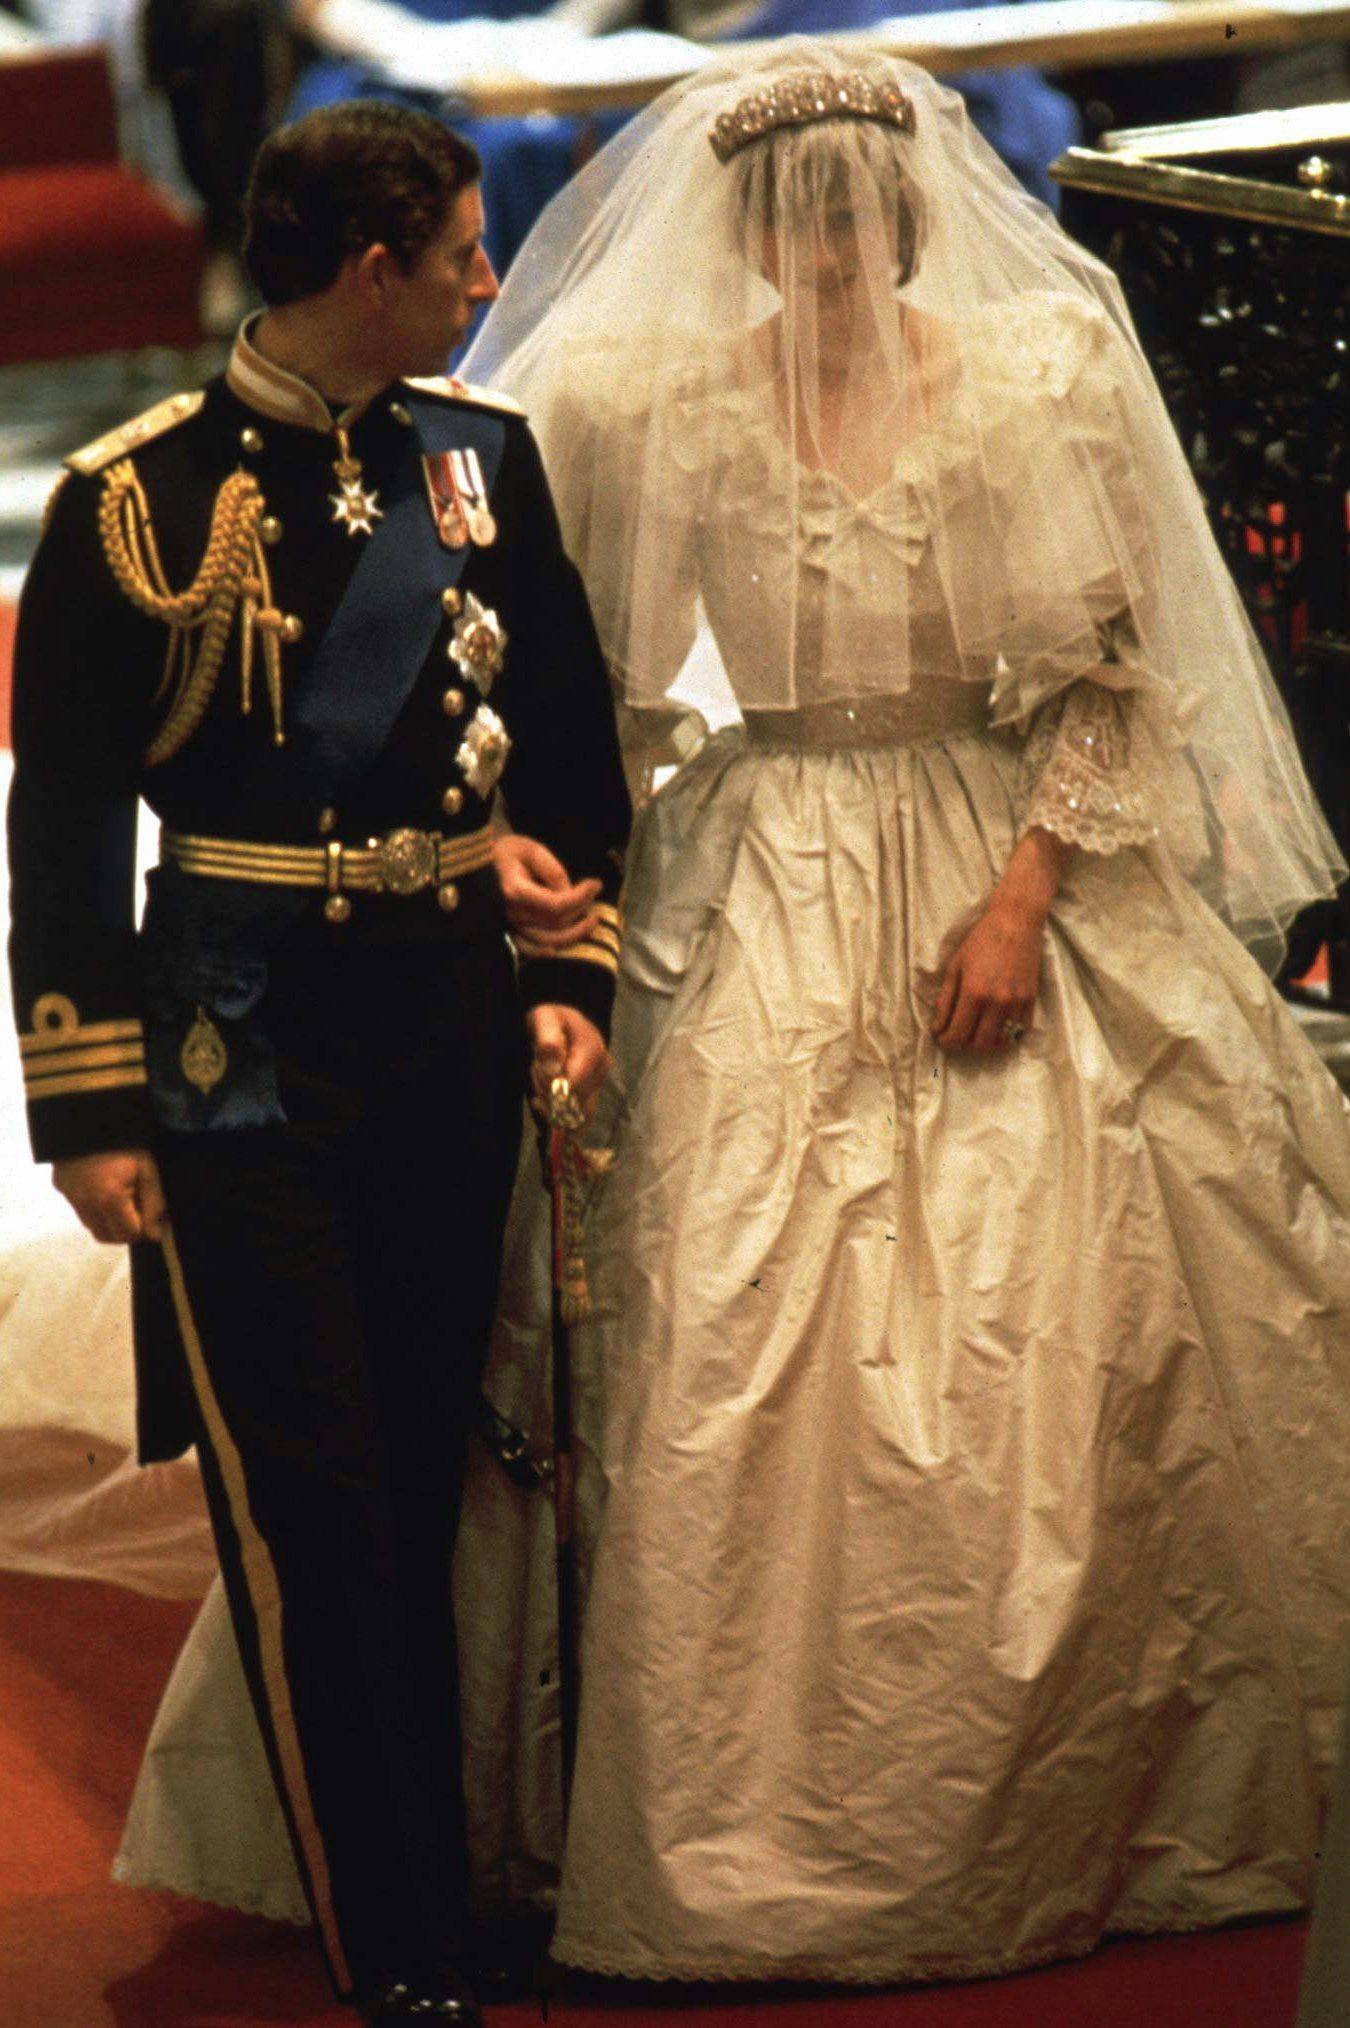 Relive past royal weddings, including the 1981 marriage of Prince Charles to Lady Diana Spencer, on DVD.